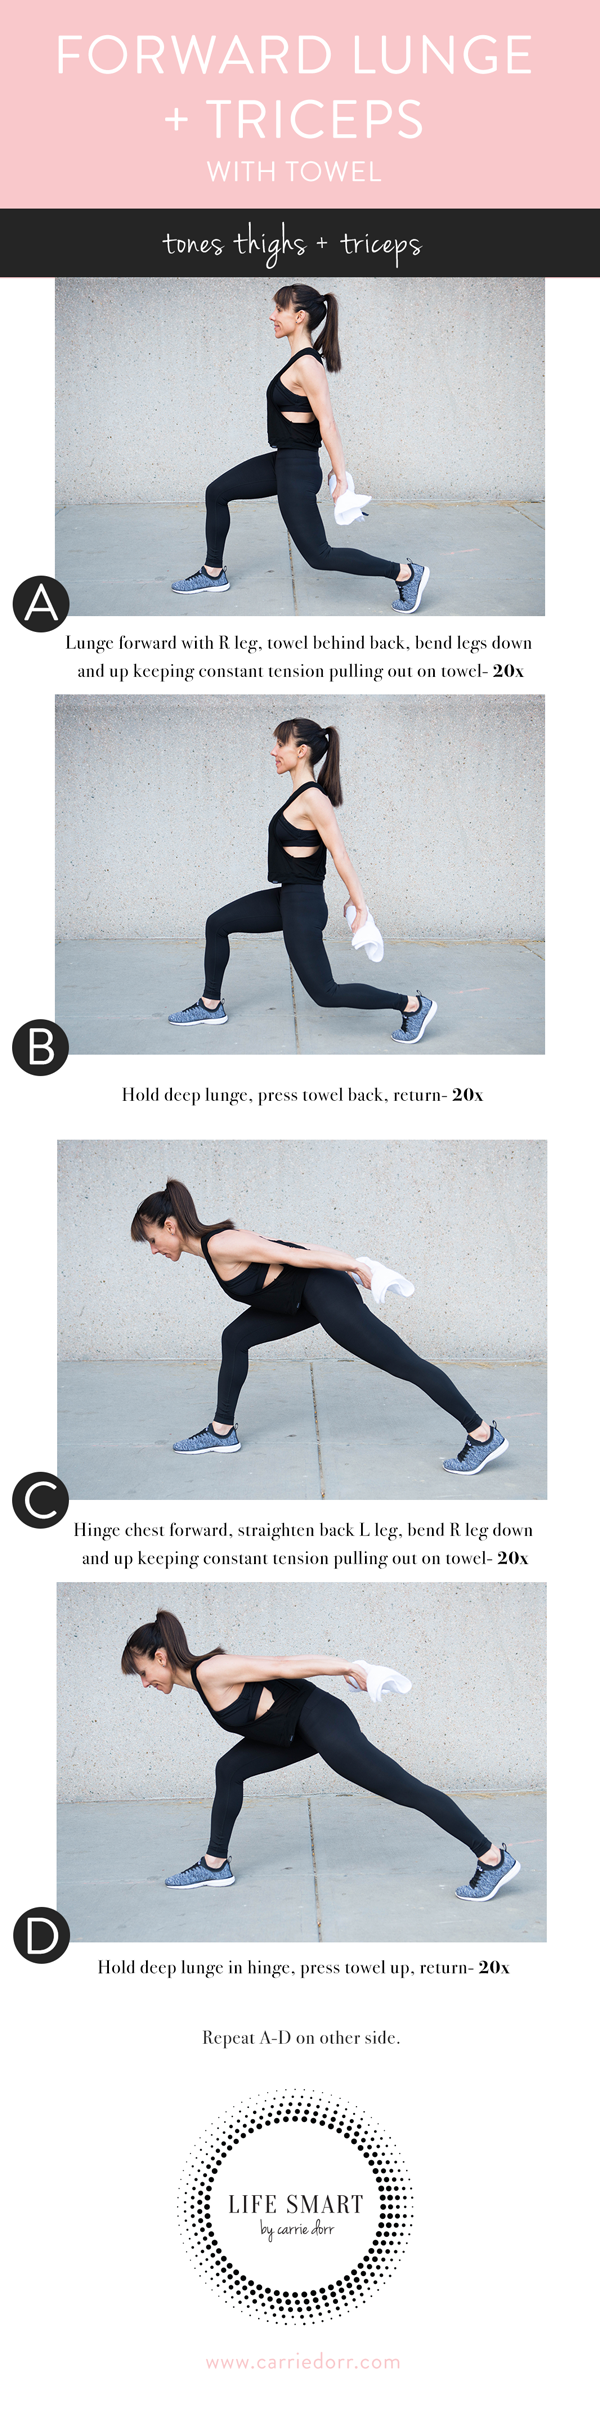 Forward lunge + tricepts with towel- LIFE SMART by Carrie Dorr